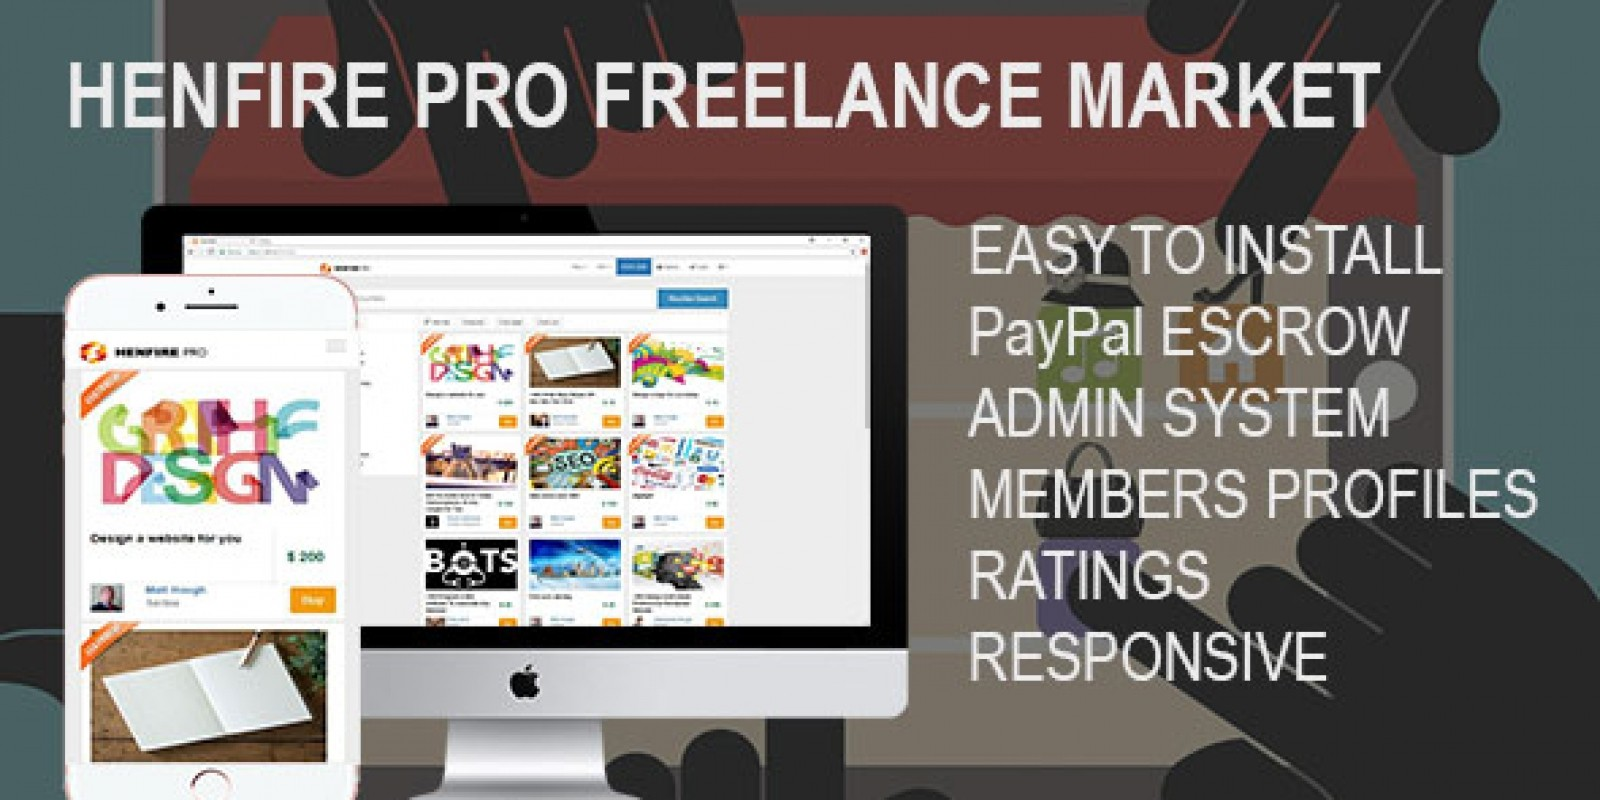 henfire pro lance jobs marketplace script miscellaneous  henfire pro lance jobs marketplace script